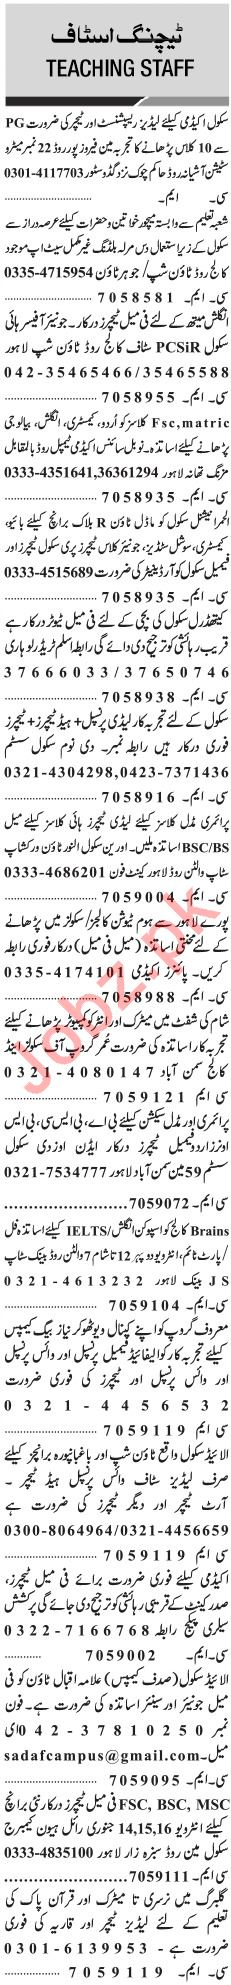 Jang Sunday Classified Ads 13th Jan 2019 for Teaching Staff